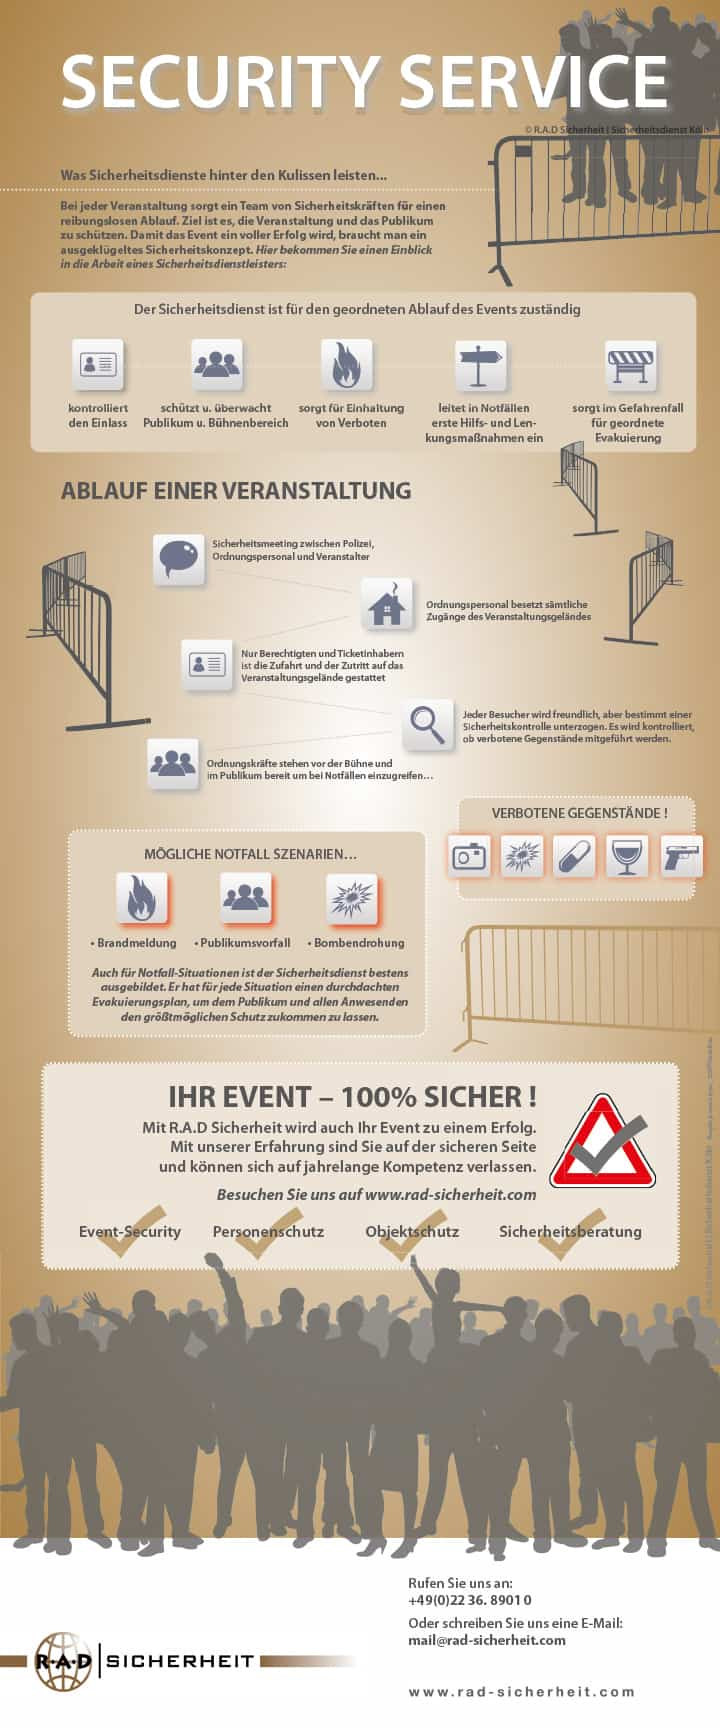 R.A.D Sicherheit: Event Security